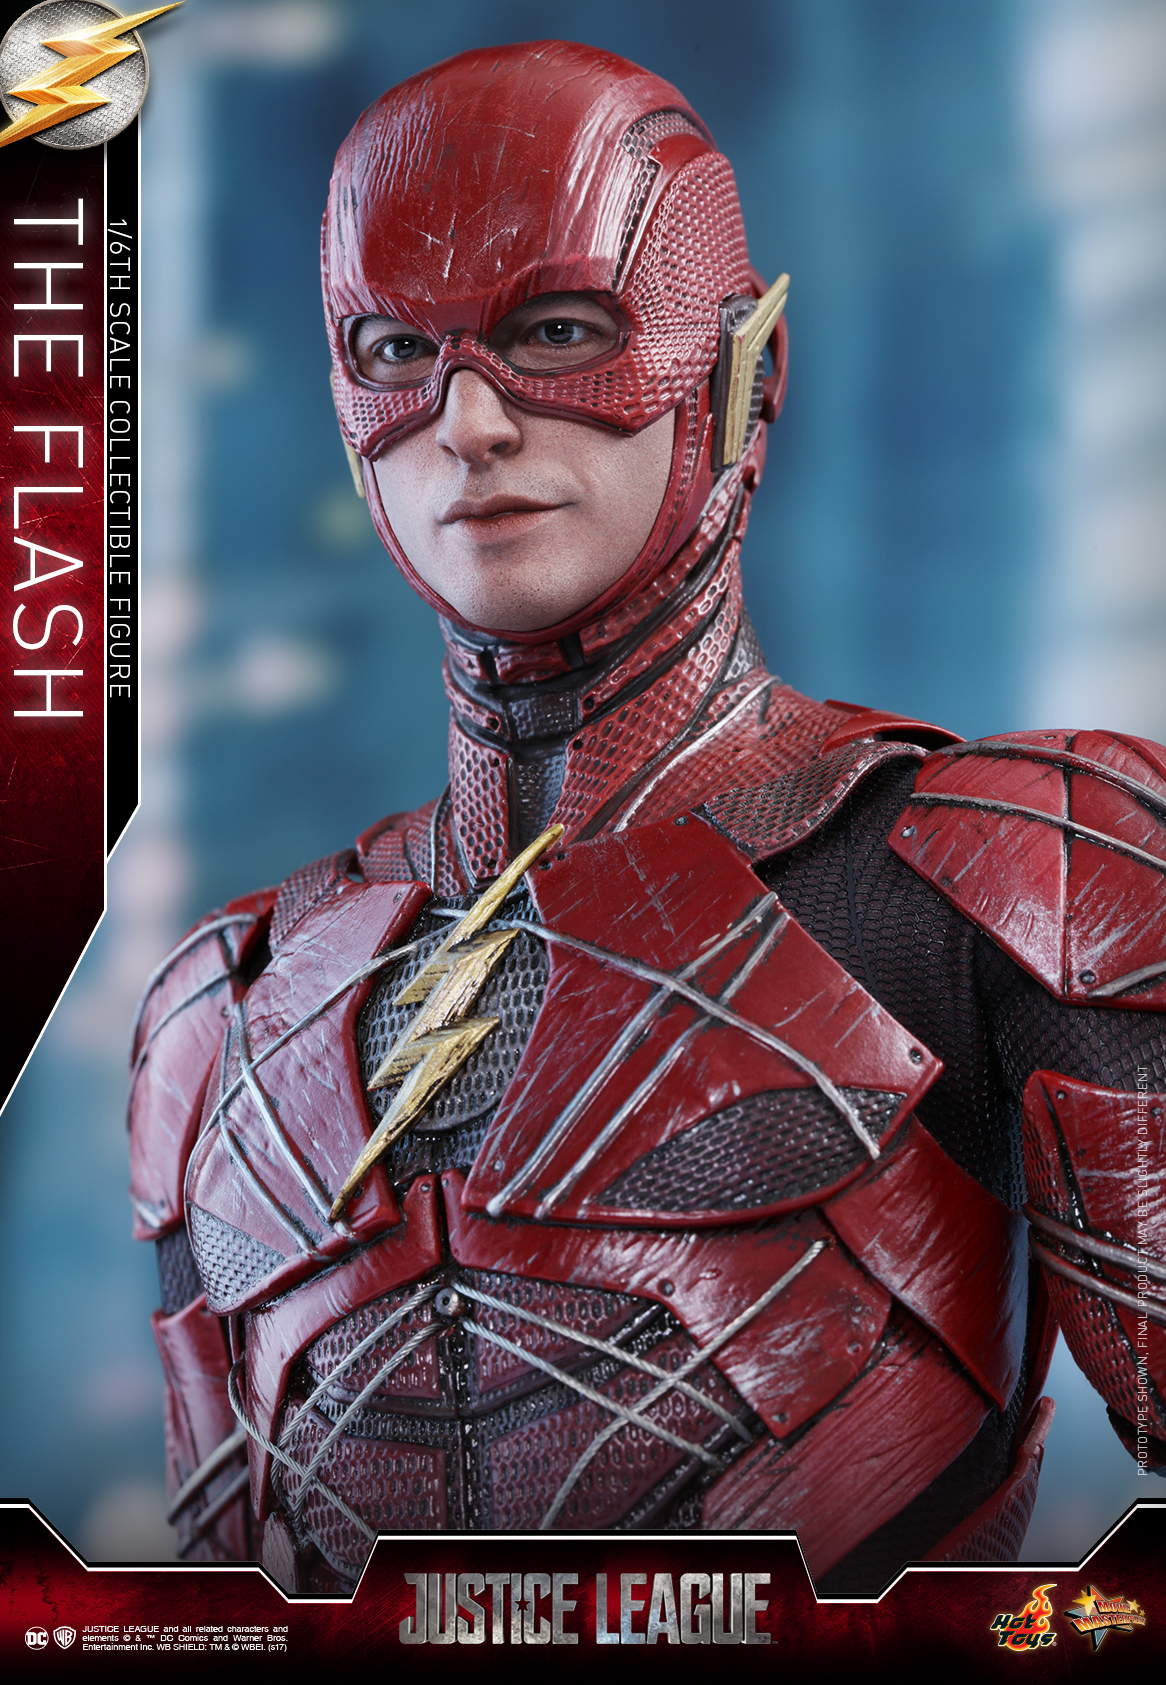 Hot Toys - Justice League - The Flash Collectible Figure_PR07.jpg